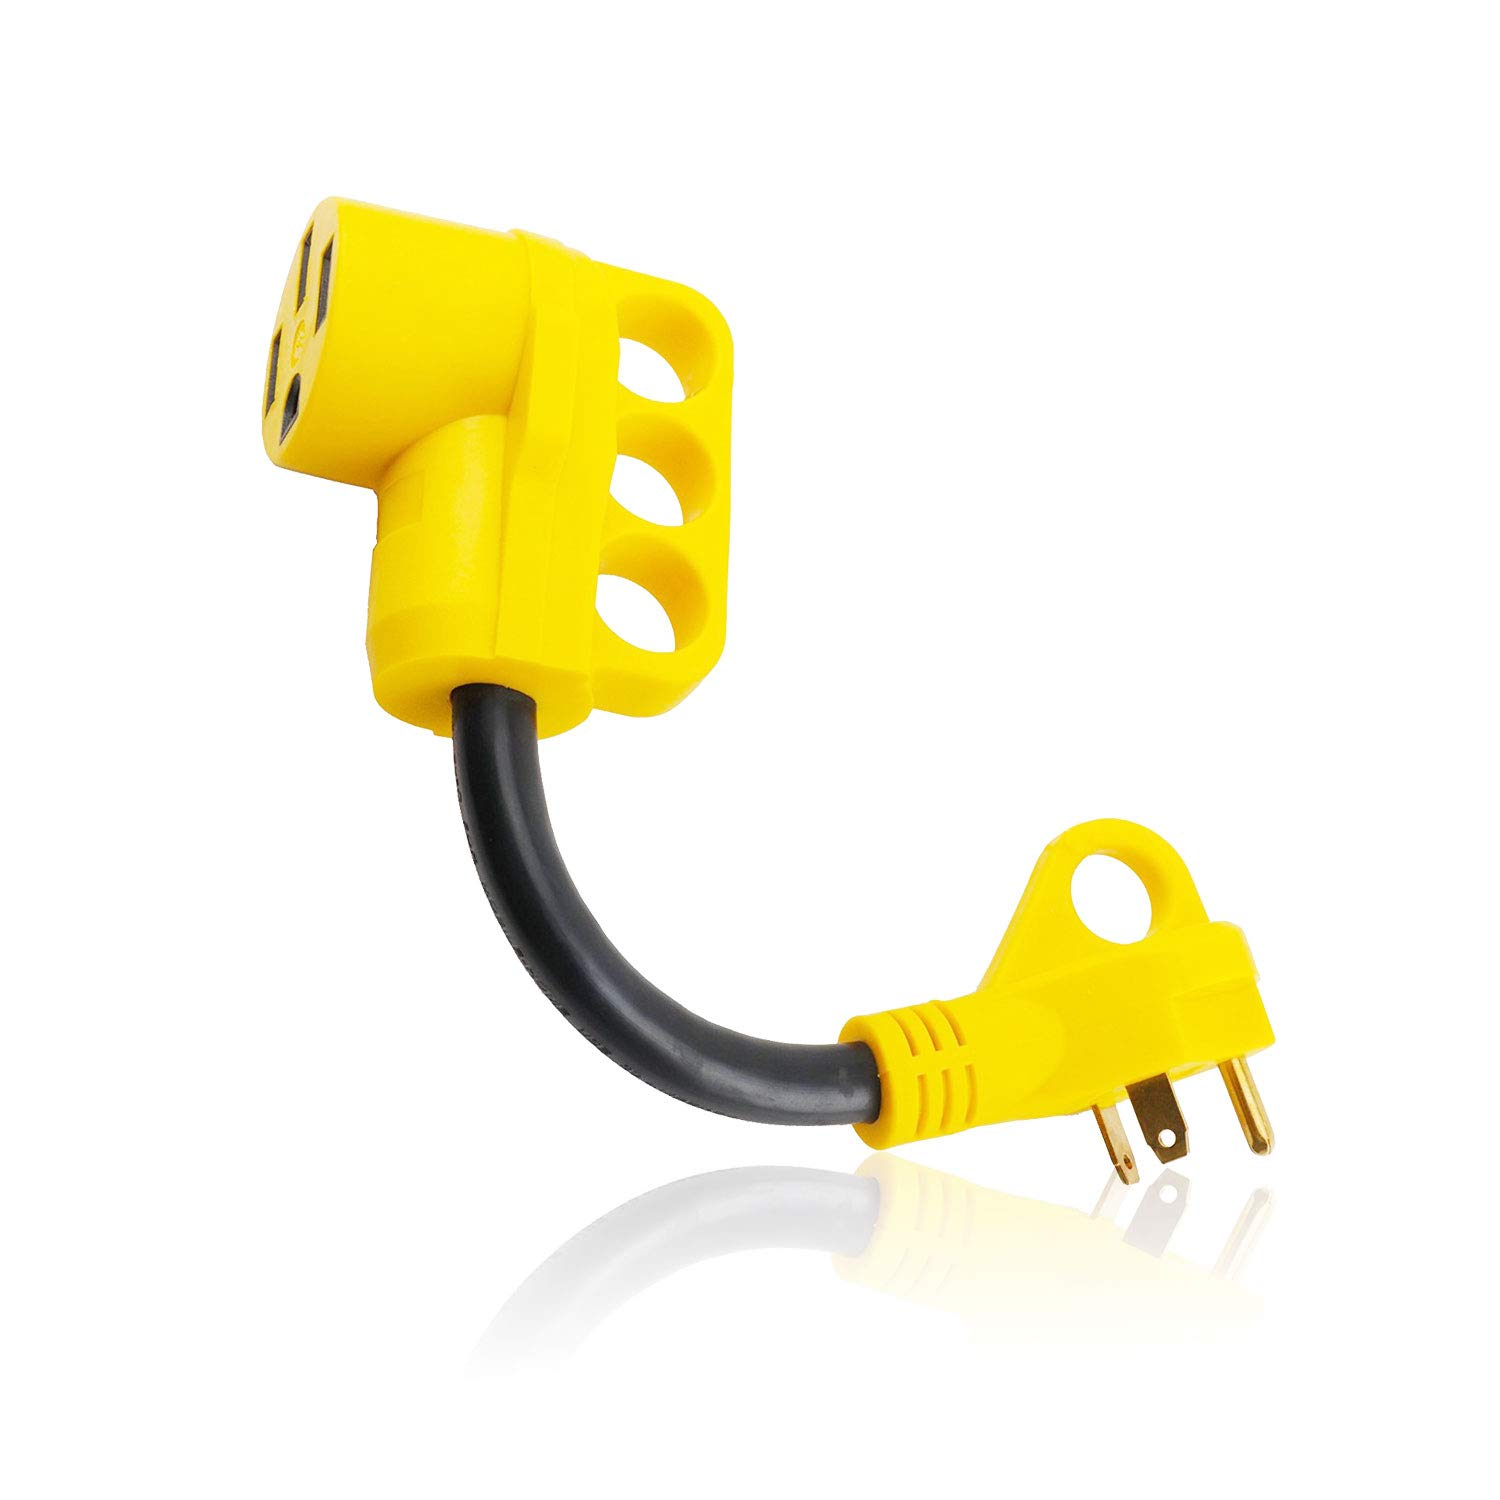 Epicord Heavy Duty RV Adapter 30 AMP Male To 50 AMP Female Dogbone Power Cord With Handles Connector, 12Inch, Yellow